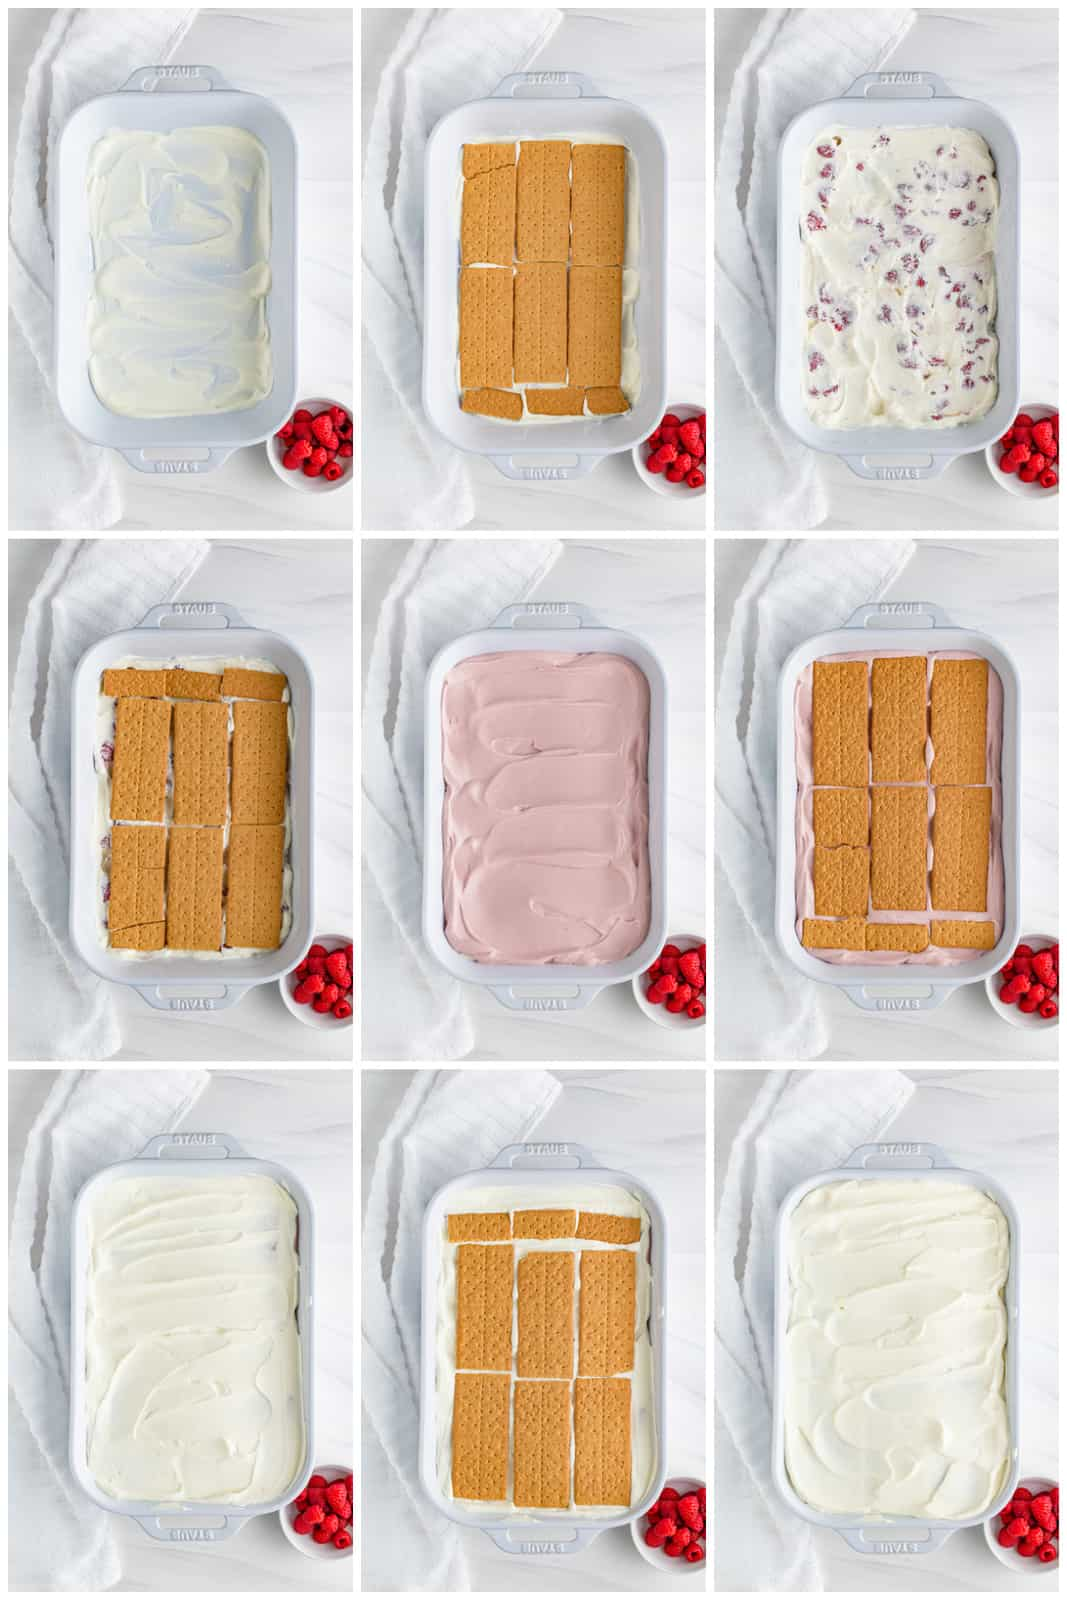 Hot to assemble an Icebox Cake